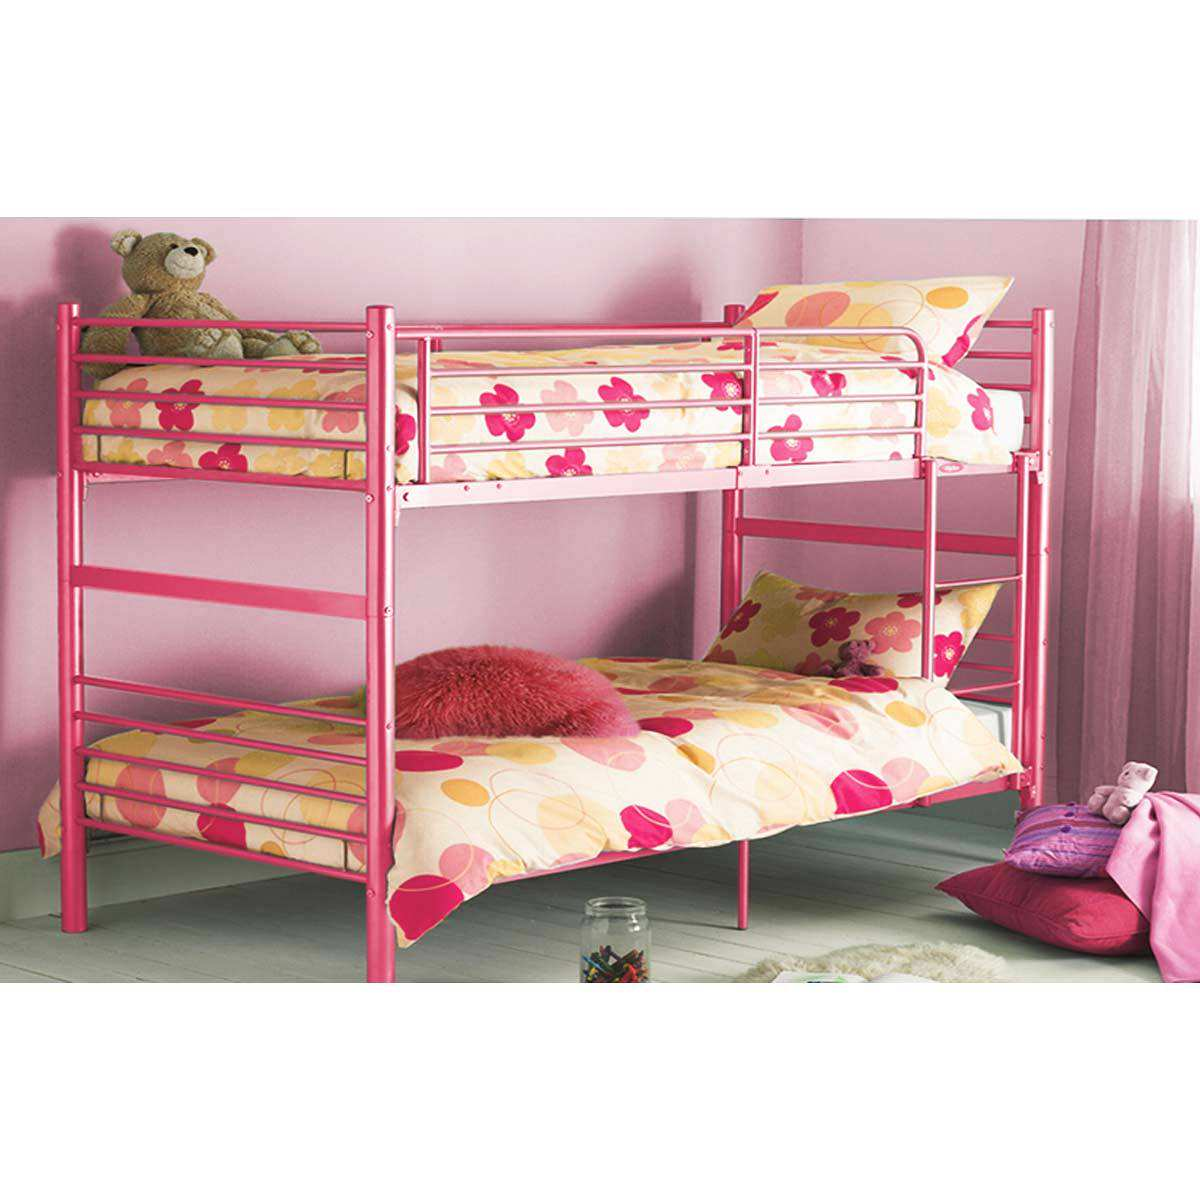 Cute Loft Beds for Girls pictures 16 Cute-Pink-Athena-Girls-Bunk-Bed-Ideas-for-Girls-Bedroom-Decoration-Design